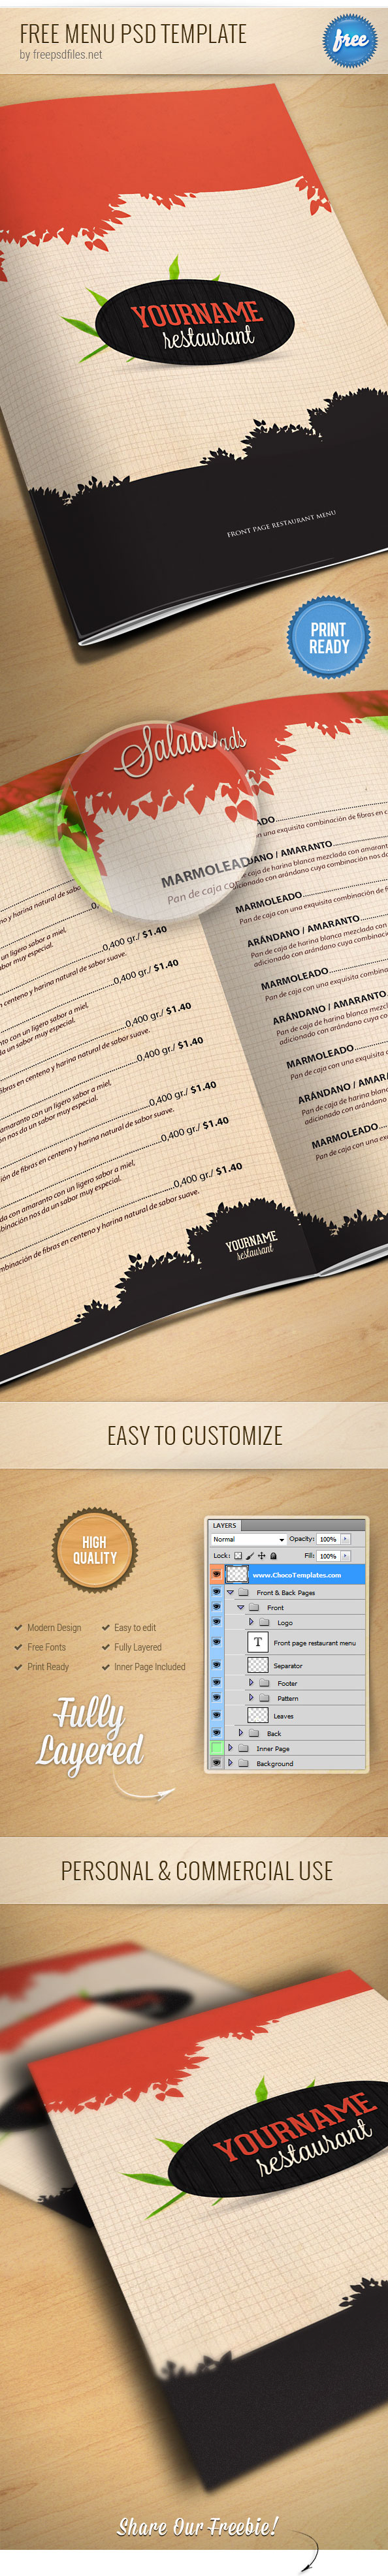 Resaurant Menu Card PSD